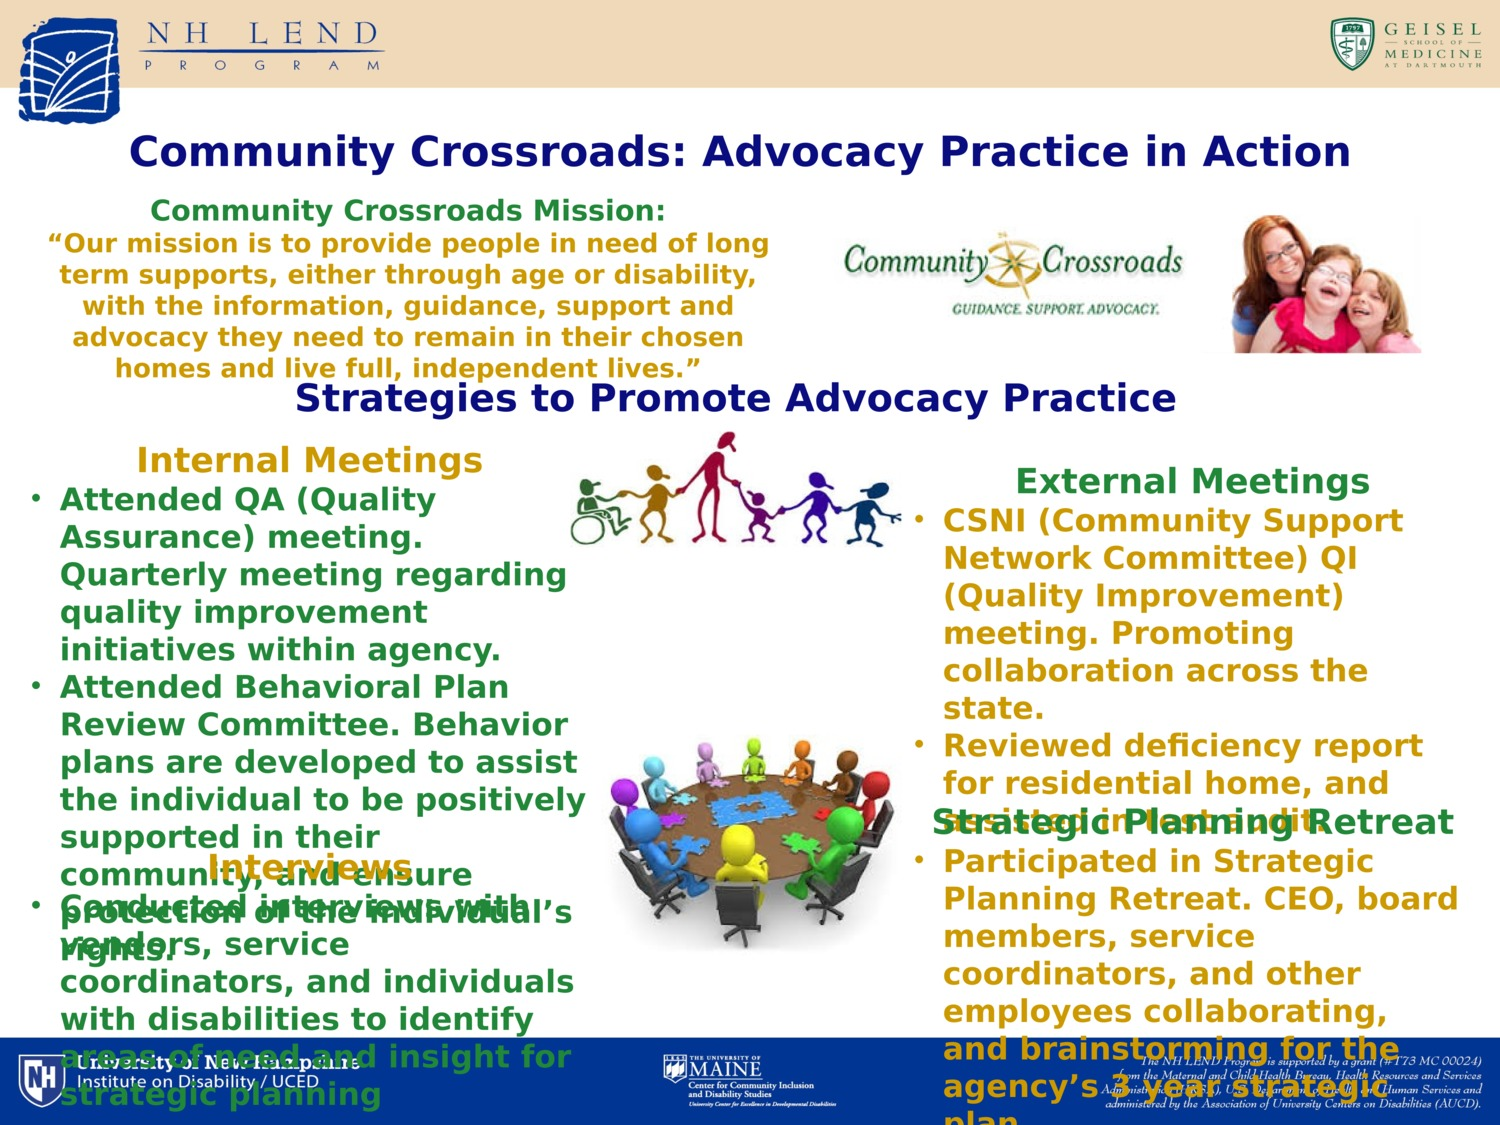 Community Crossroads: Advocacy Practice In Action by aln1